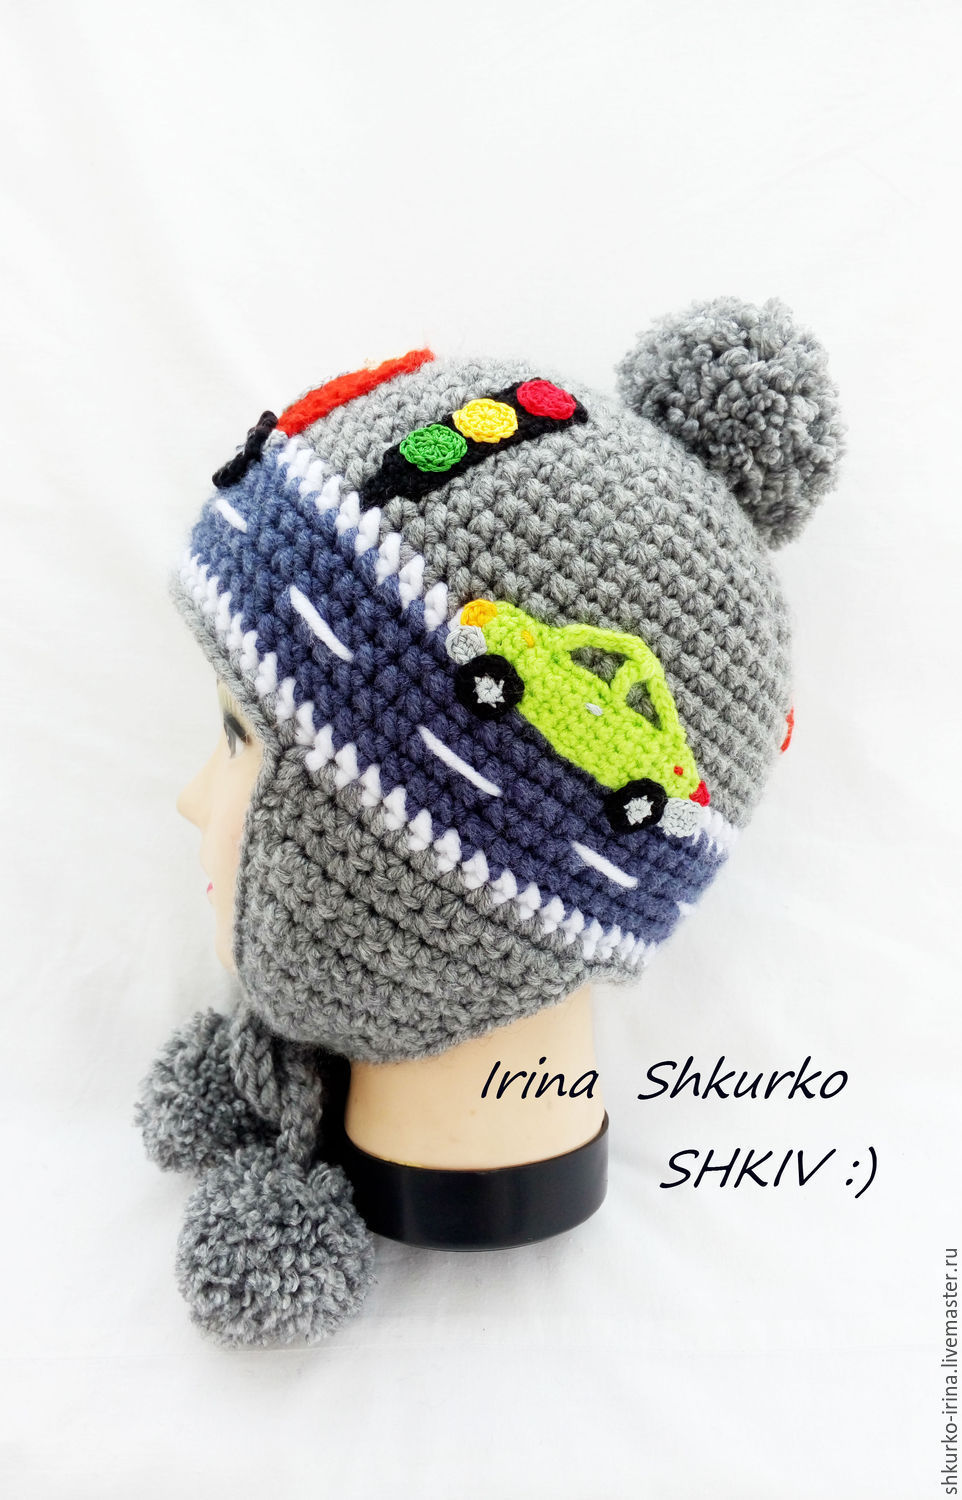 c3512904145 SHKIV Hats and scarves handmade.  Fire truck . winter hat